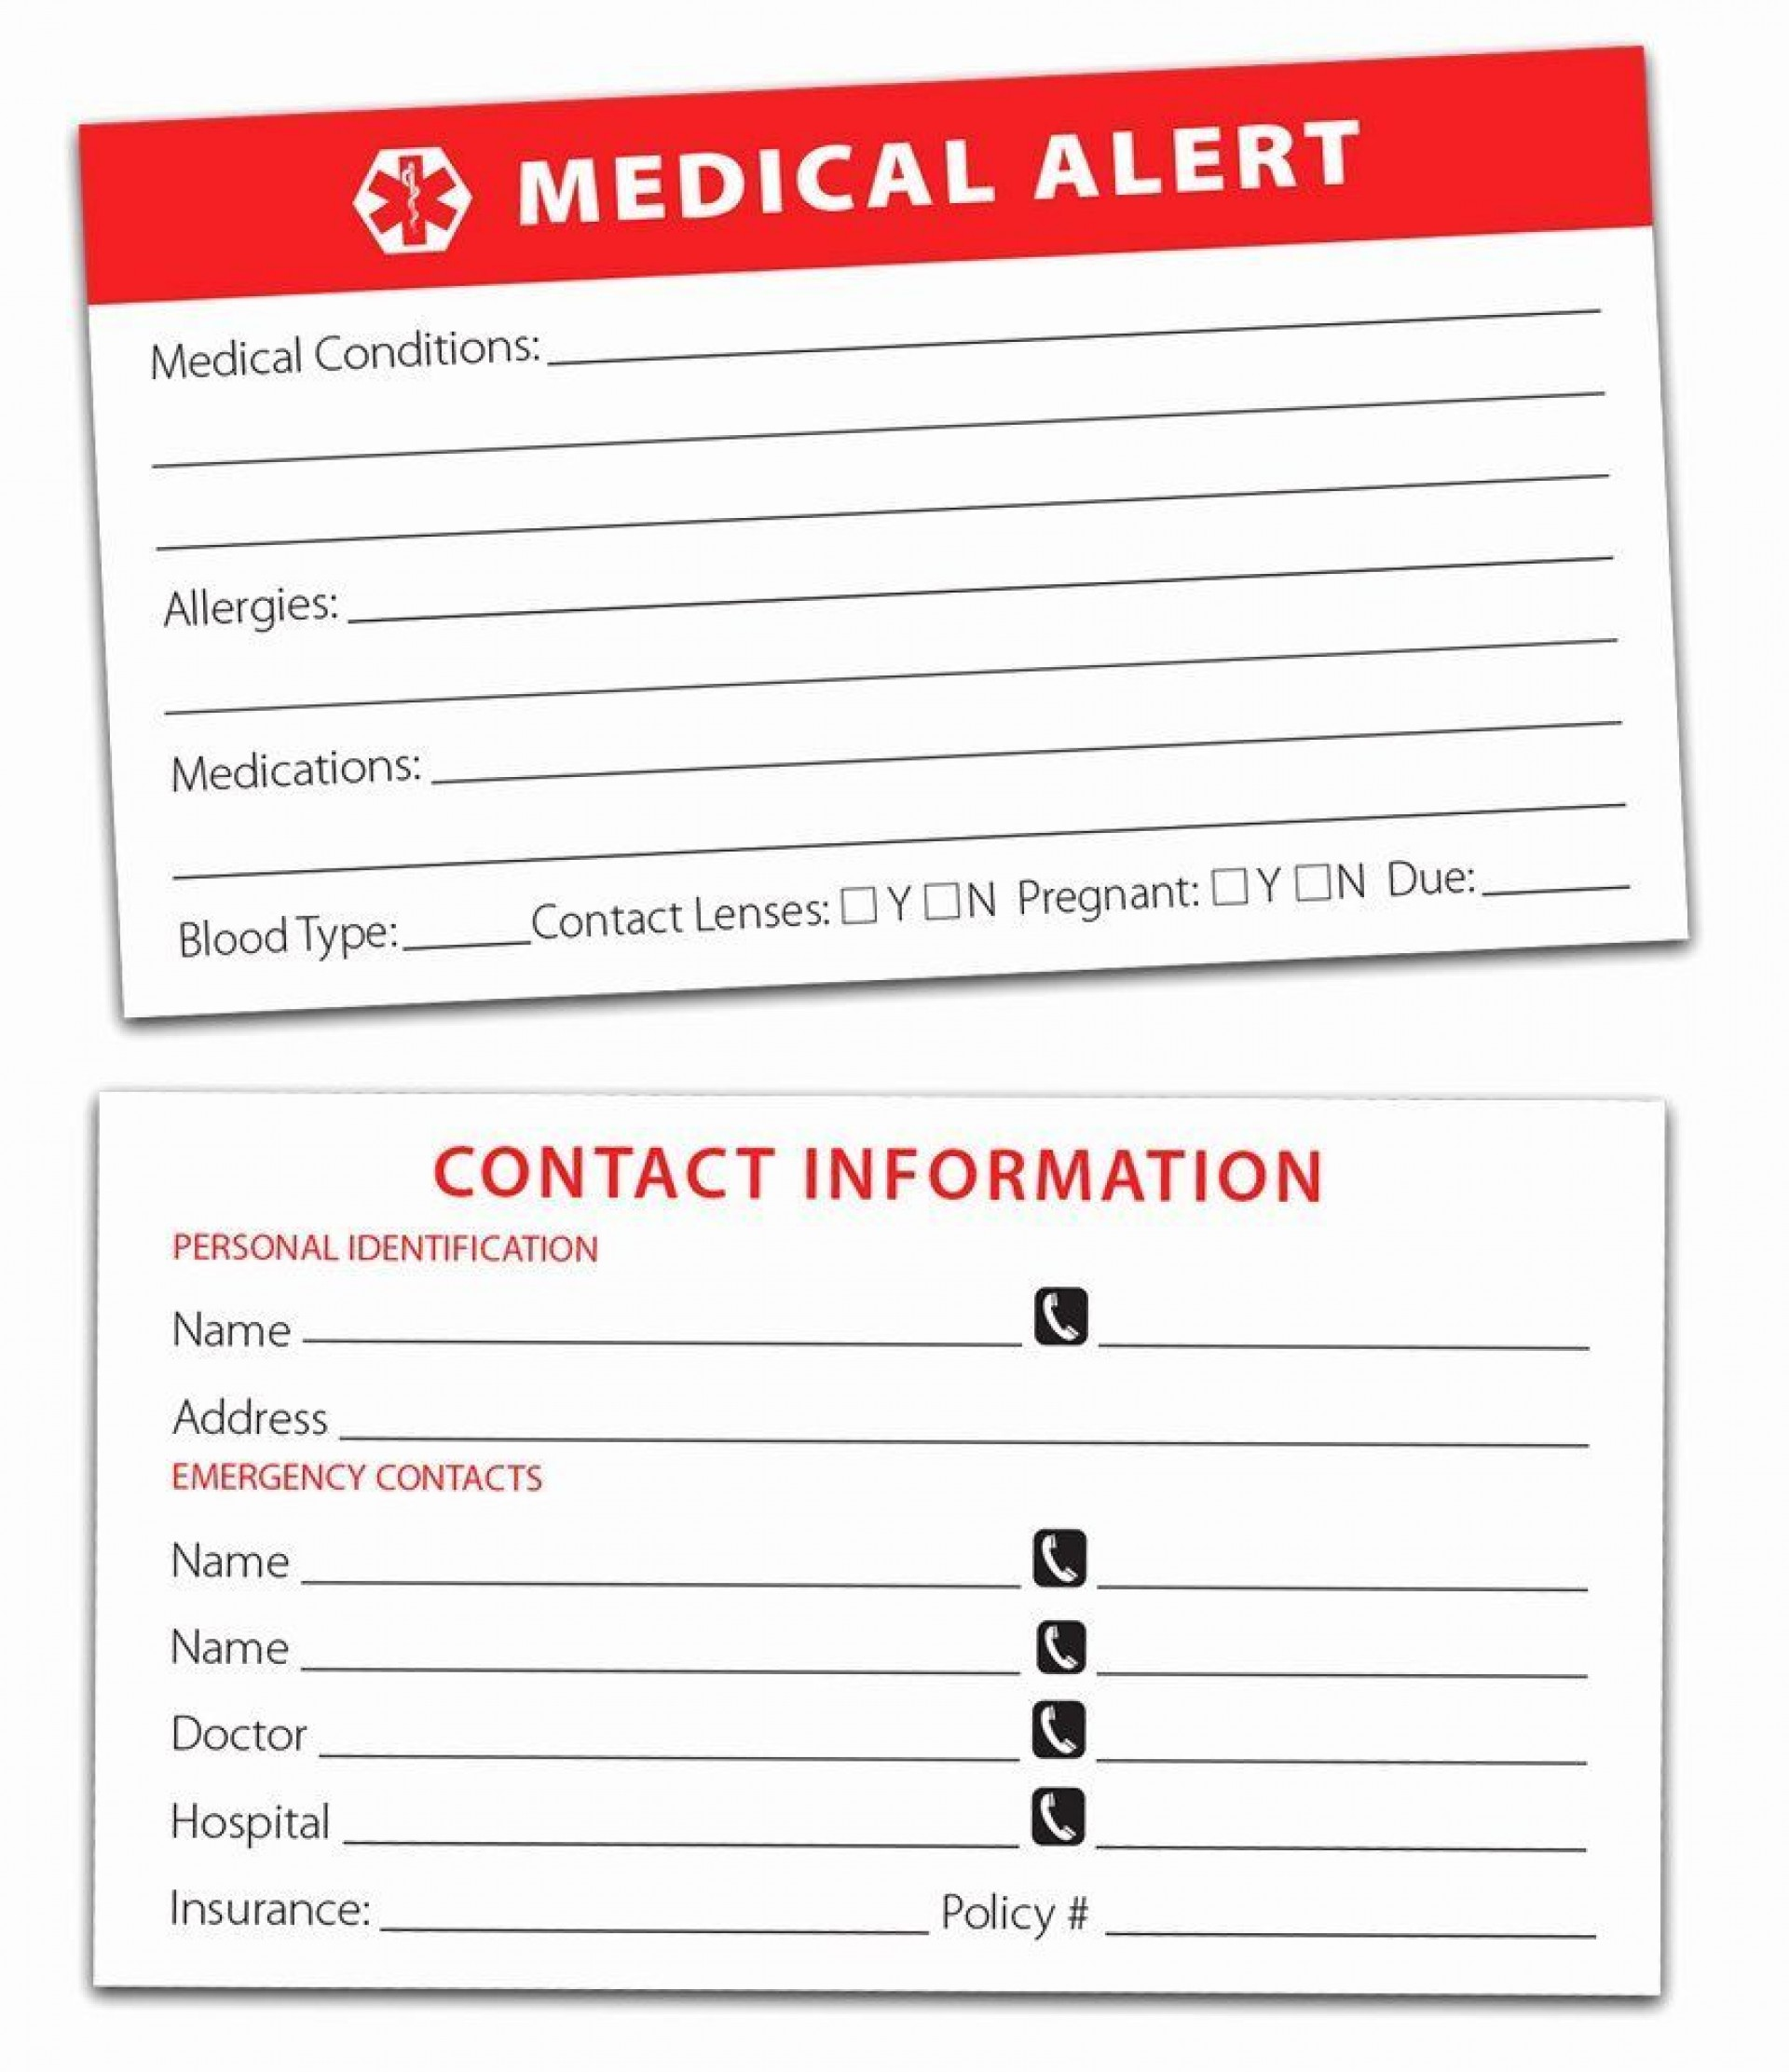 008 Wonderful Free Emergency Contact Card Template Uk Highest Clarity 1920